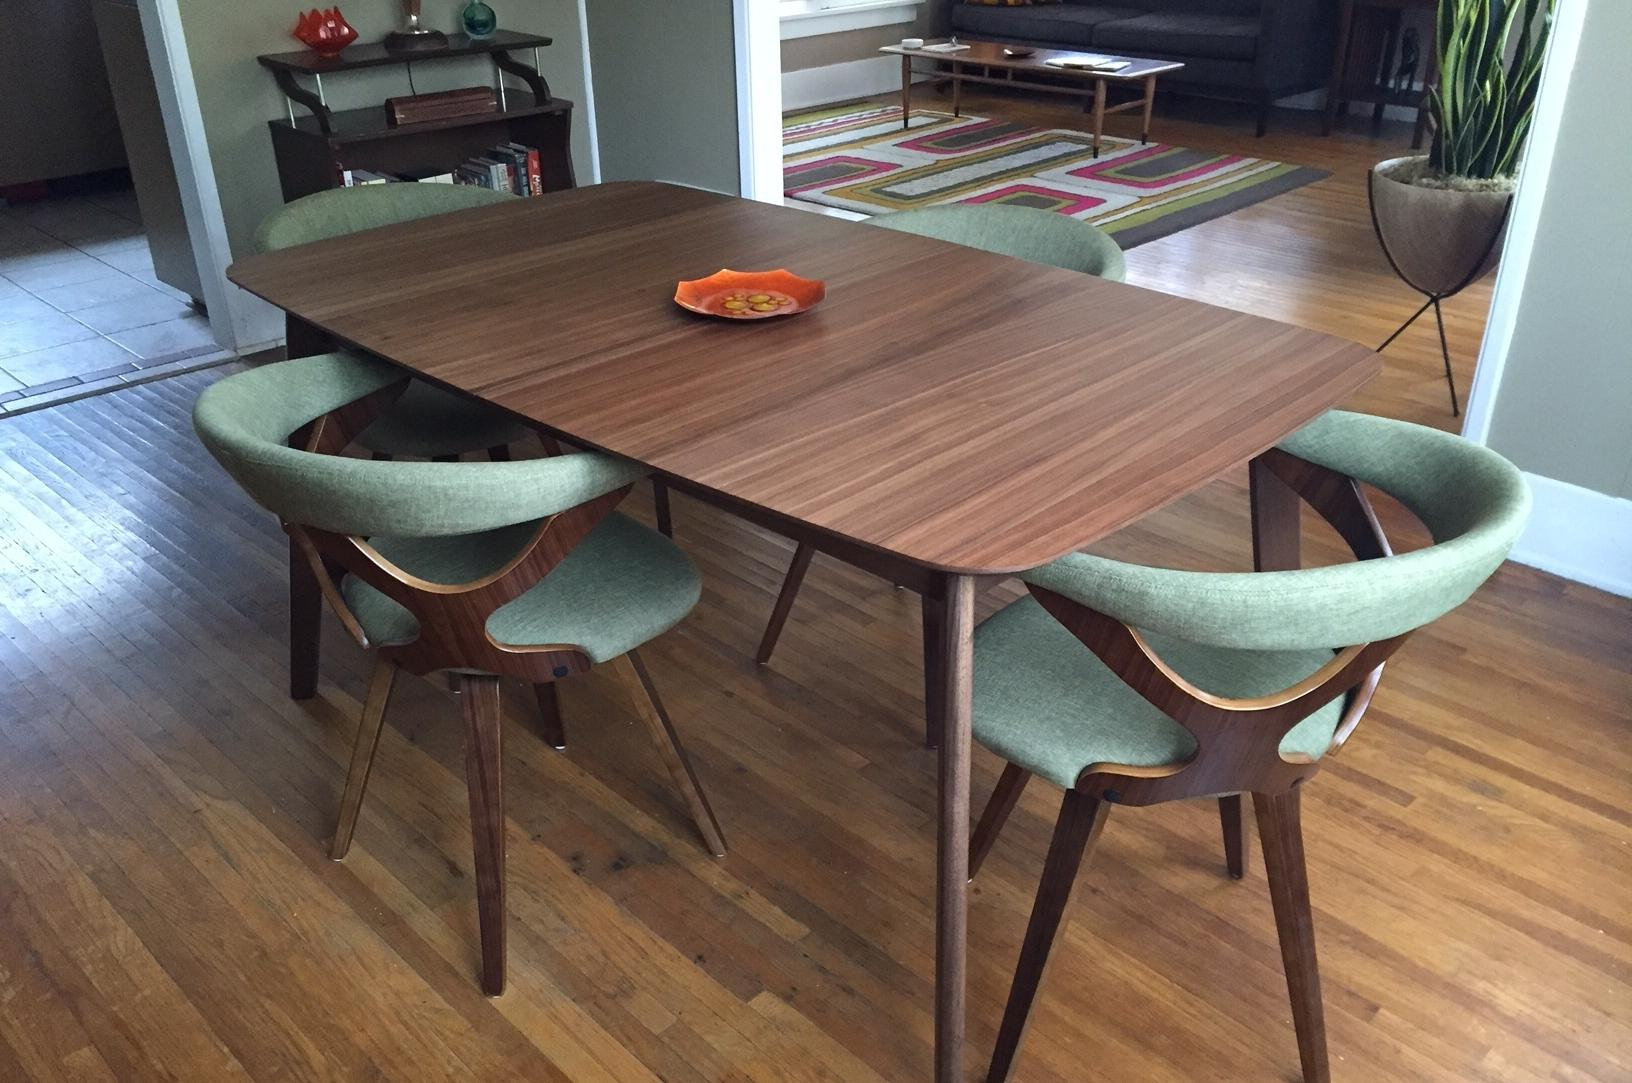 Mix And Match Is The Modern Way To Furnish A Dining Room Regarding Famous Mid Century Rectangular Top Dining Tables With Wood Legs (View 20 of 30)